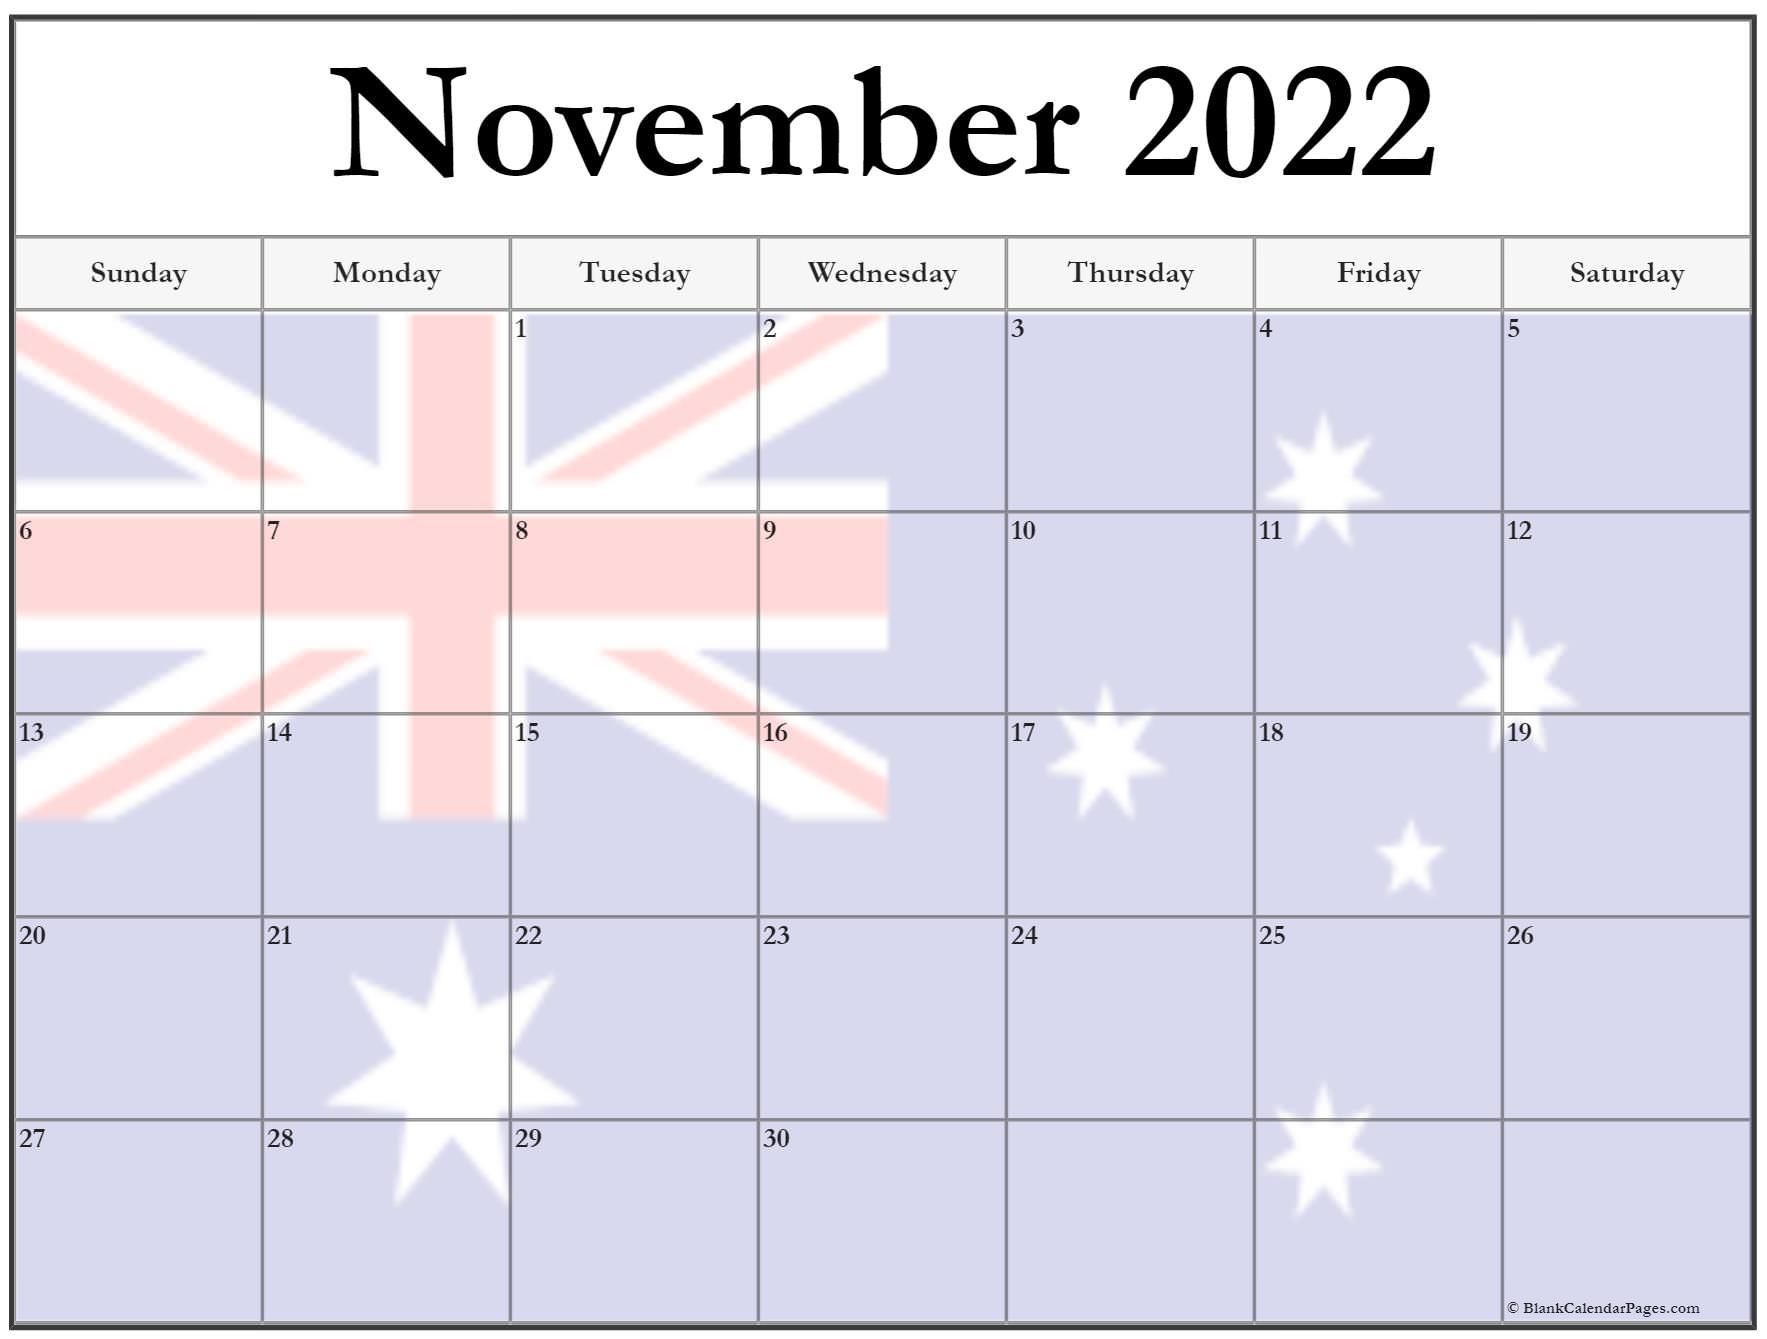 Collection of November 2022 photo calendars with image ...